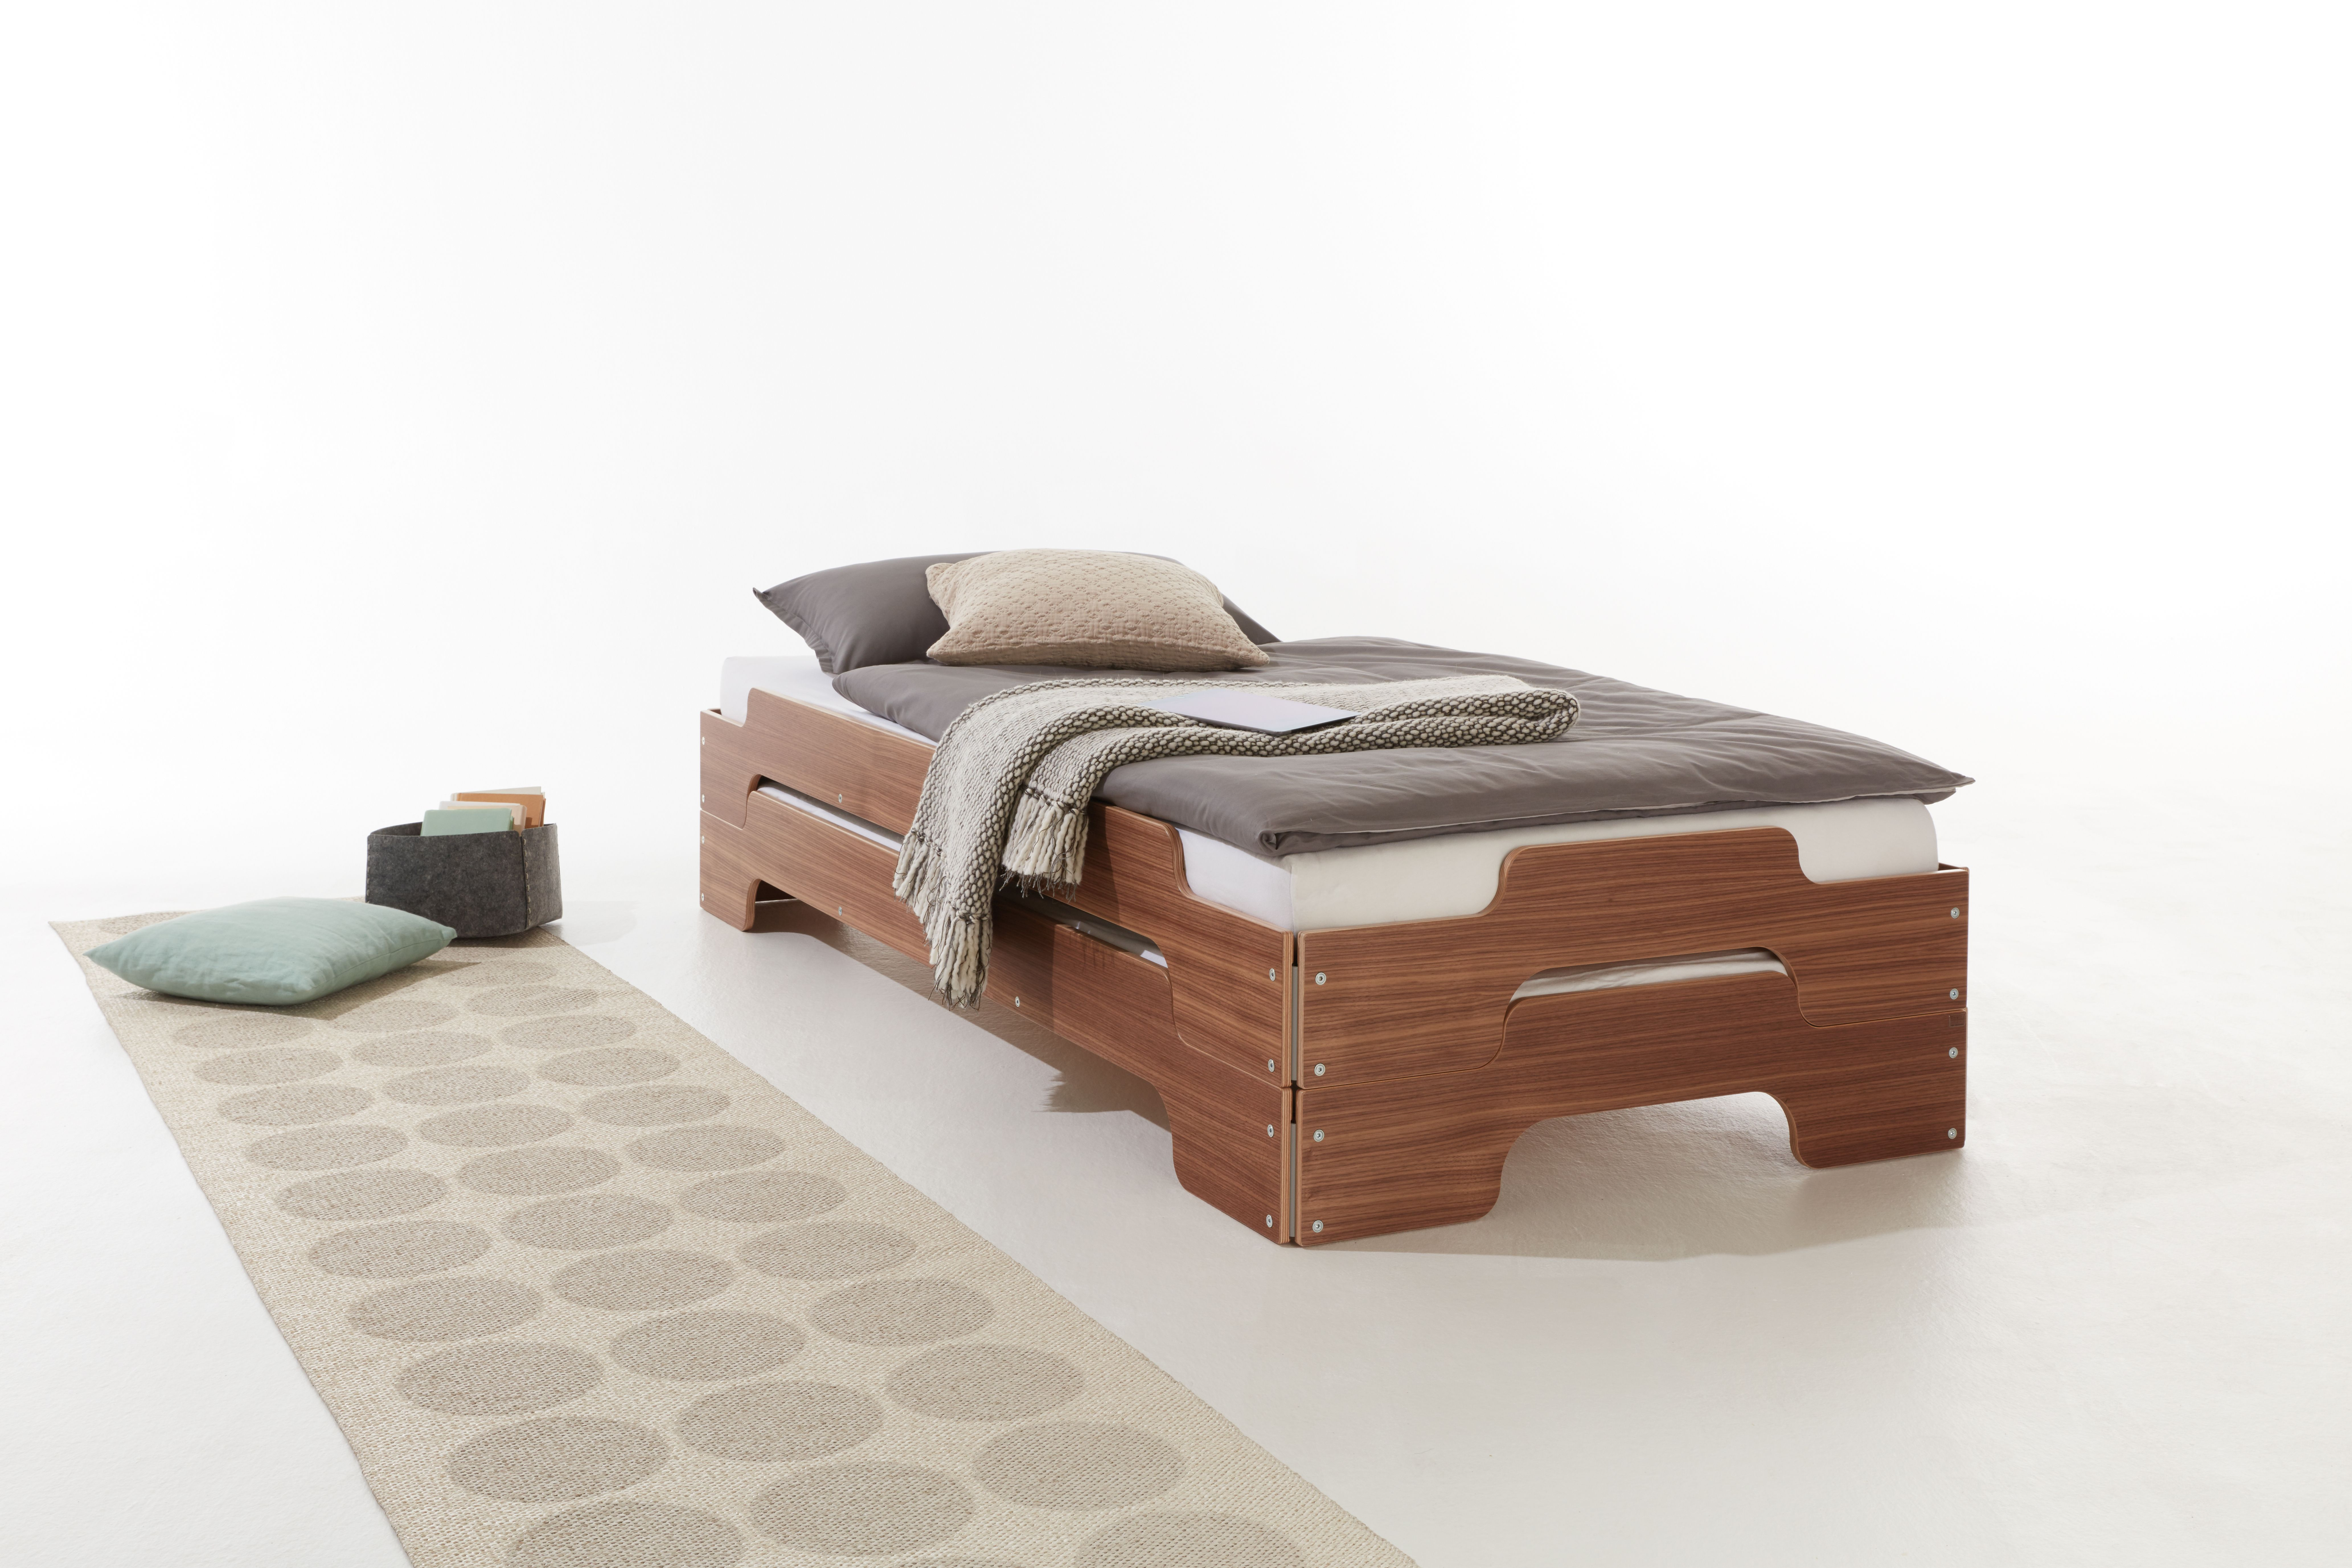 Modern Stacking Bed in 2020 Bed, Furniture for small